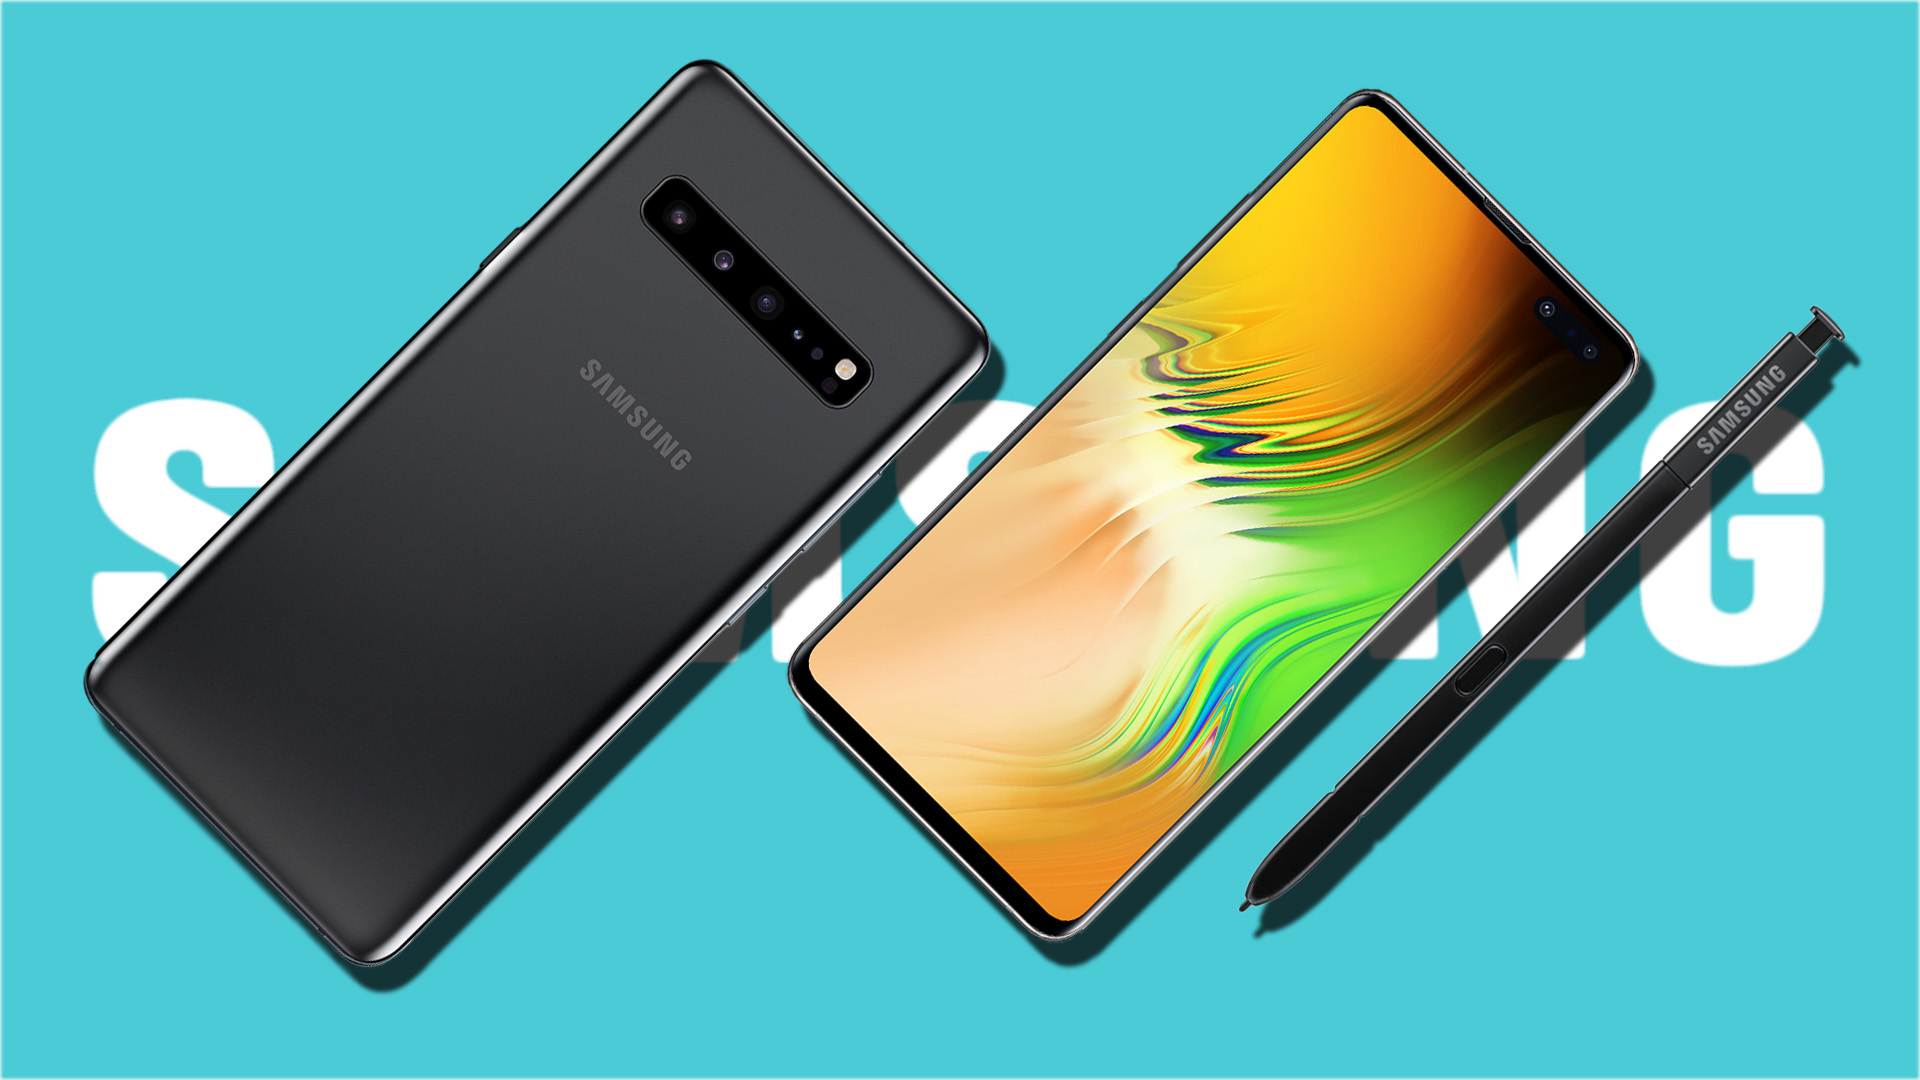 Galaxy Note 10 Confirmed By Verizon To Support 5g Networks